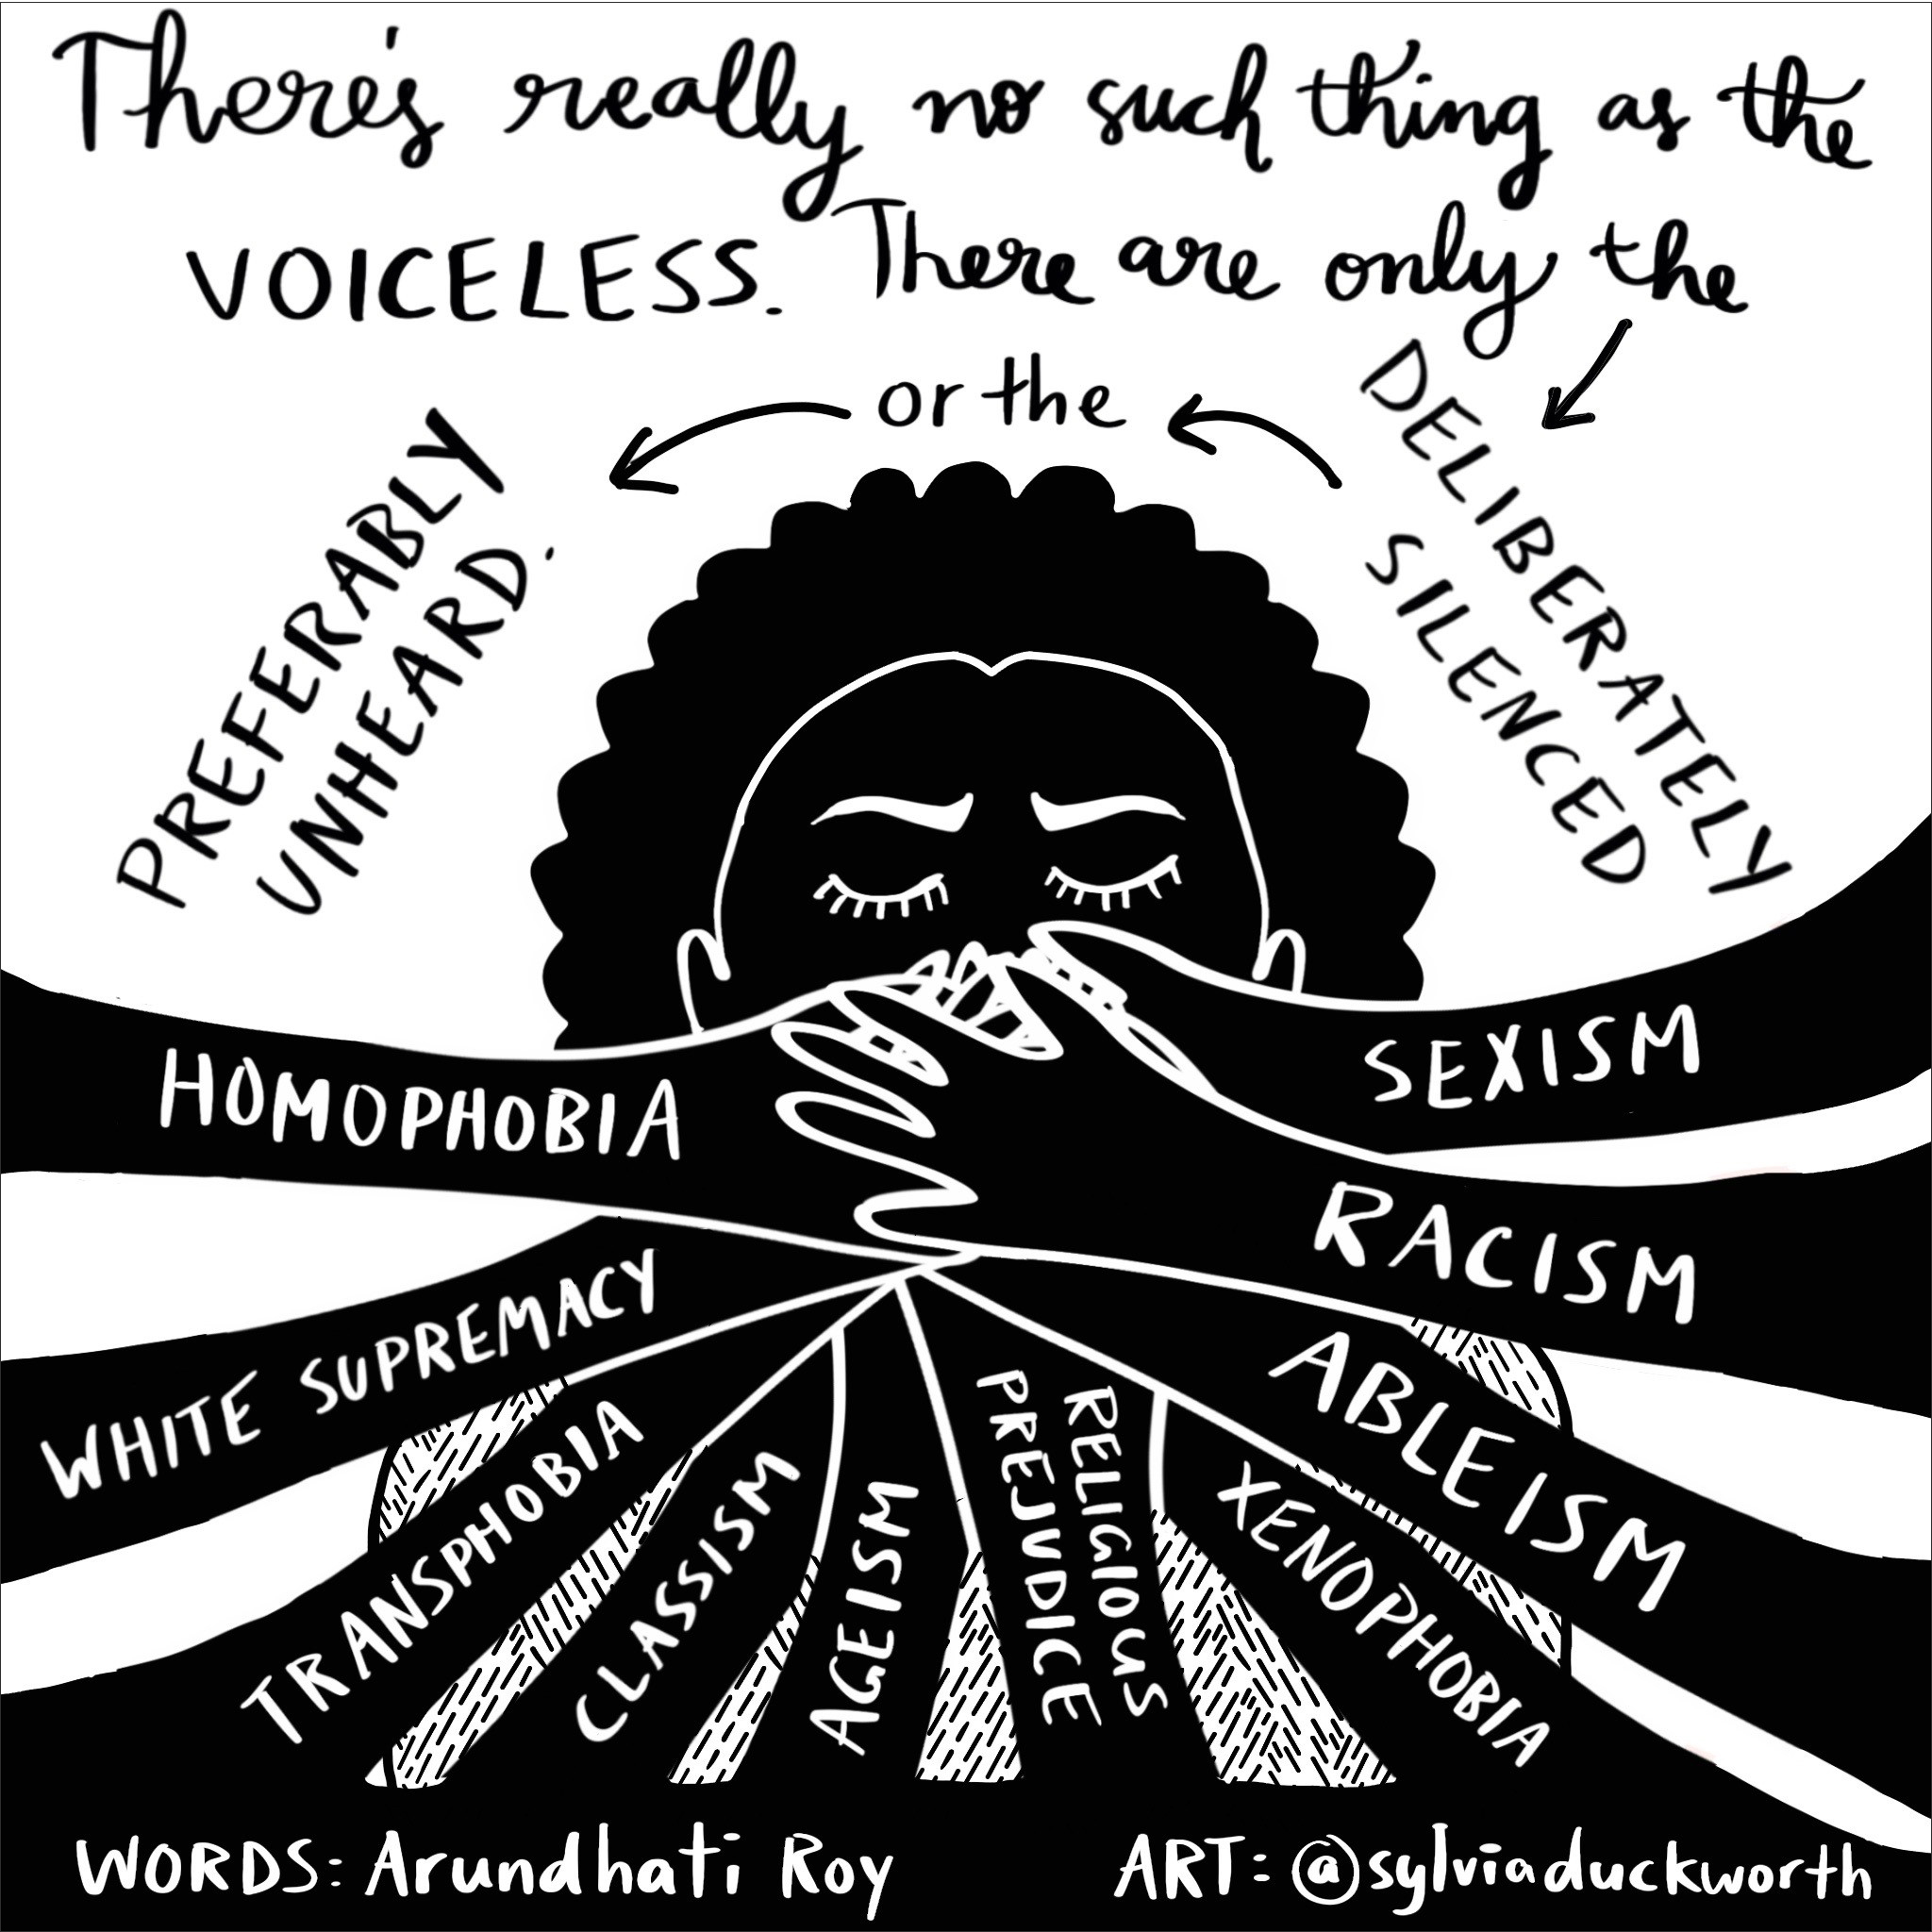 """This image depicts an individual whose mouth is being covered by multiple hands. Each hand is labelled with the words sexism, racism, ableism, xenophobia, religious prejudice, ageism, classism, transphobia, white supremacy and homophobia. At the top of the image it reads: """"There's really no such thing as the VOICELESS. There are only the deliberately silenced or the preferably unheard. Words by Arundhati Roy and Artwork by @sylivaduckworth"""